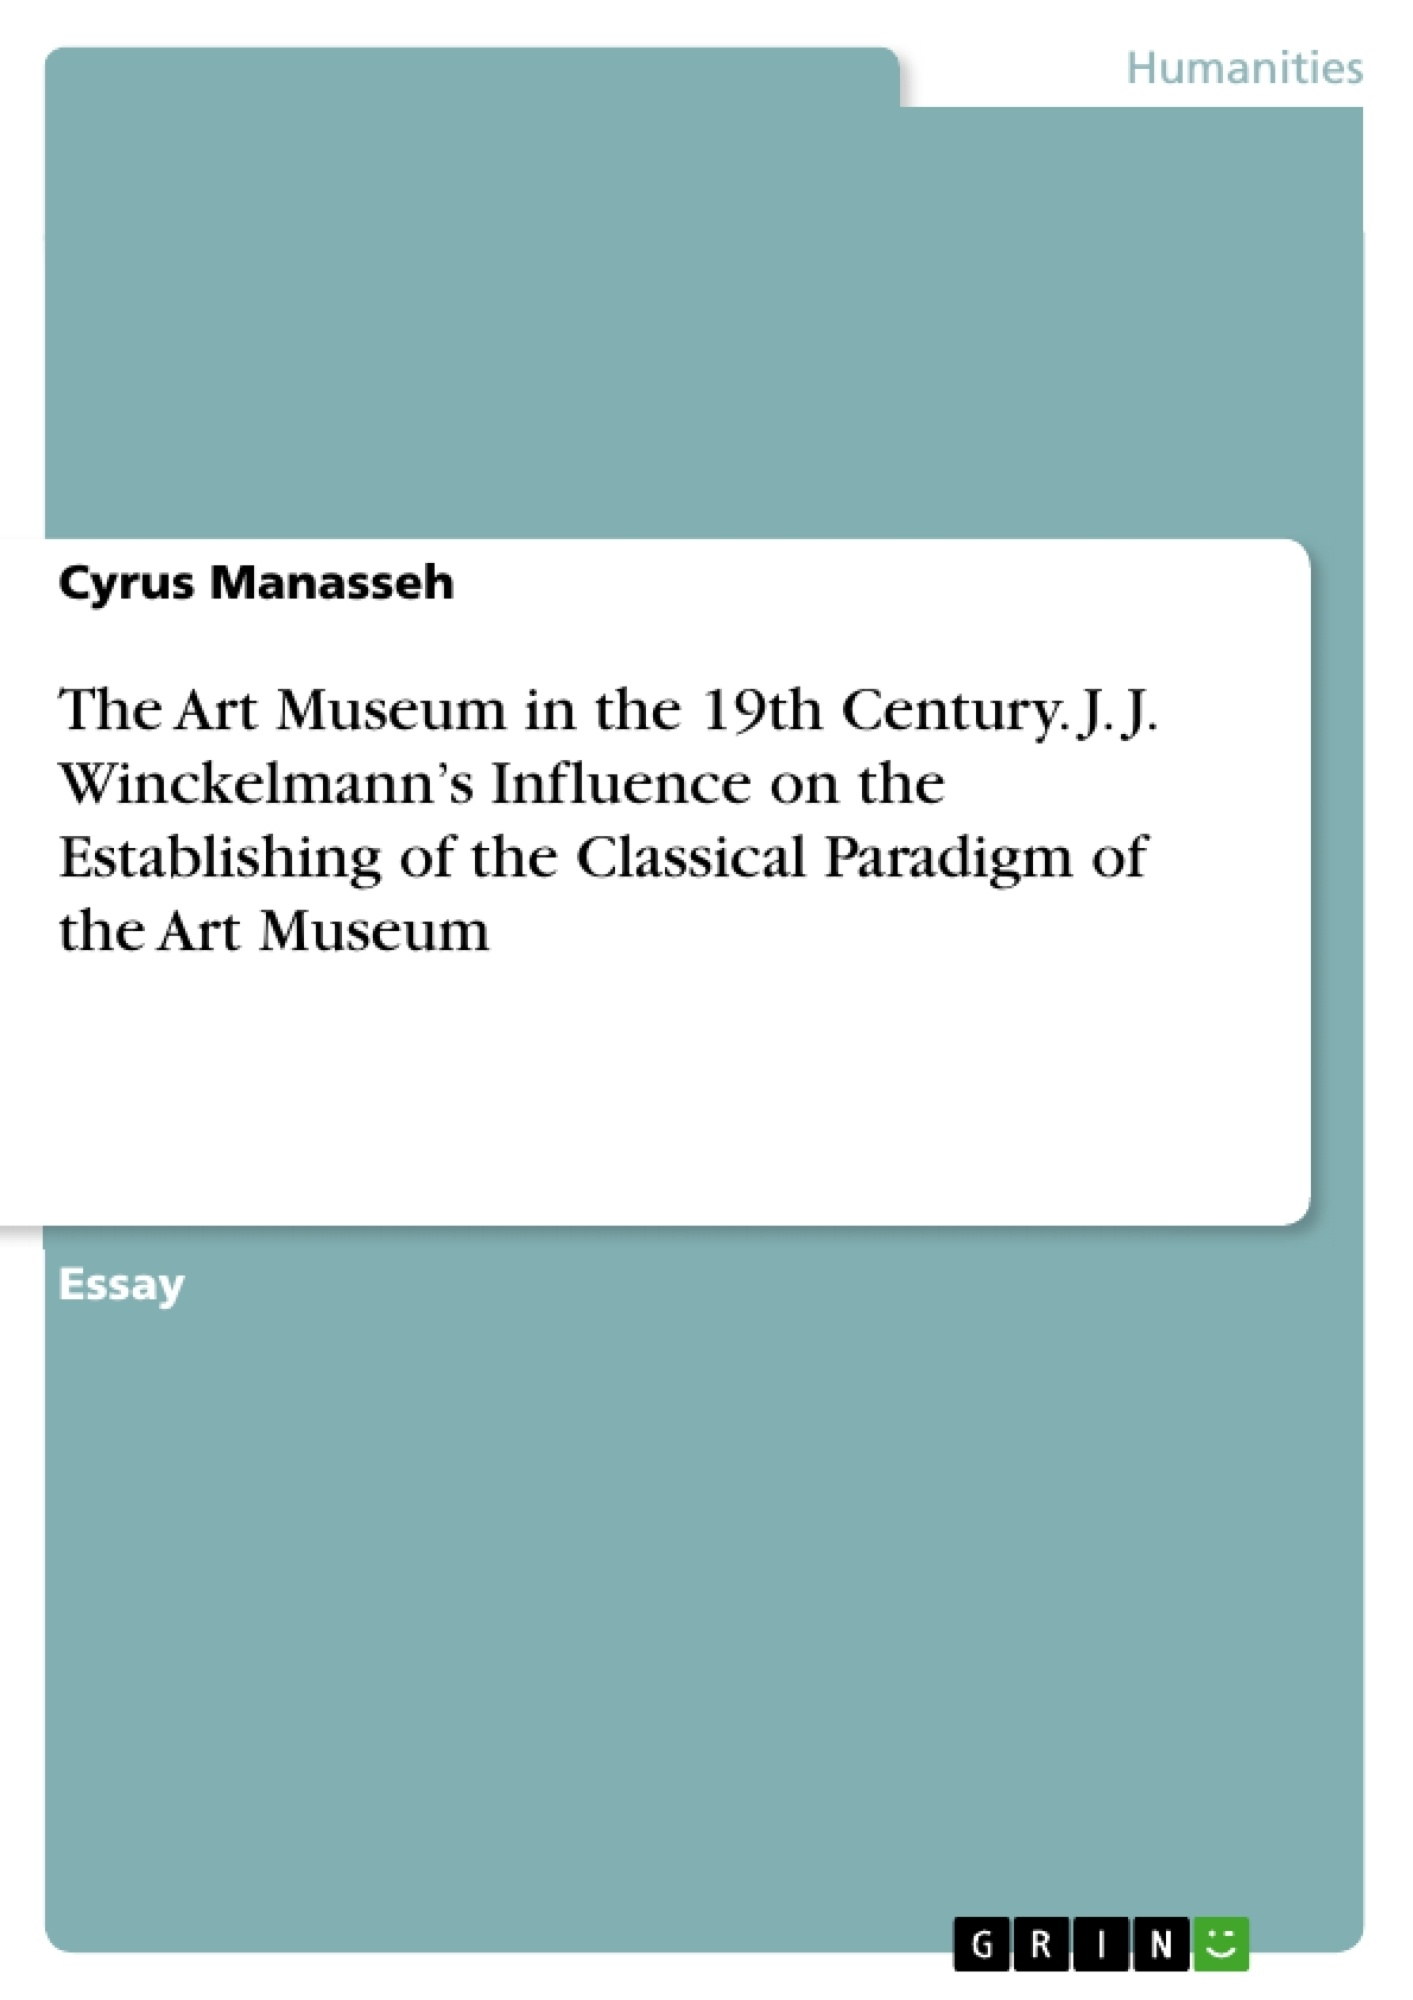 Title: The Art Museum in the 19th Century. J. J. Winckelmann's Influence on the Establishing of the Classical Paradigm of the Art Museum